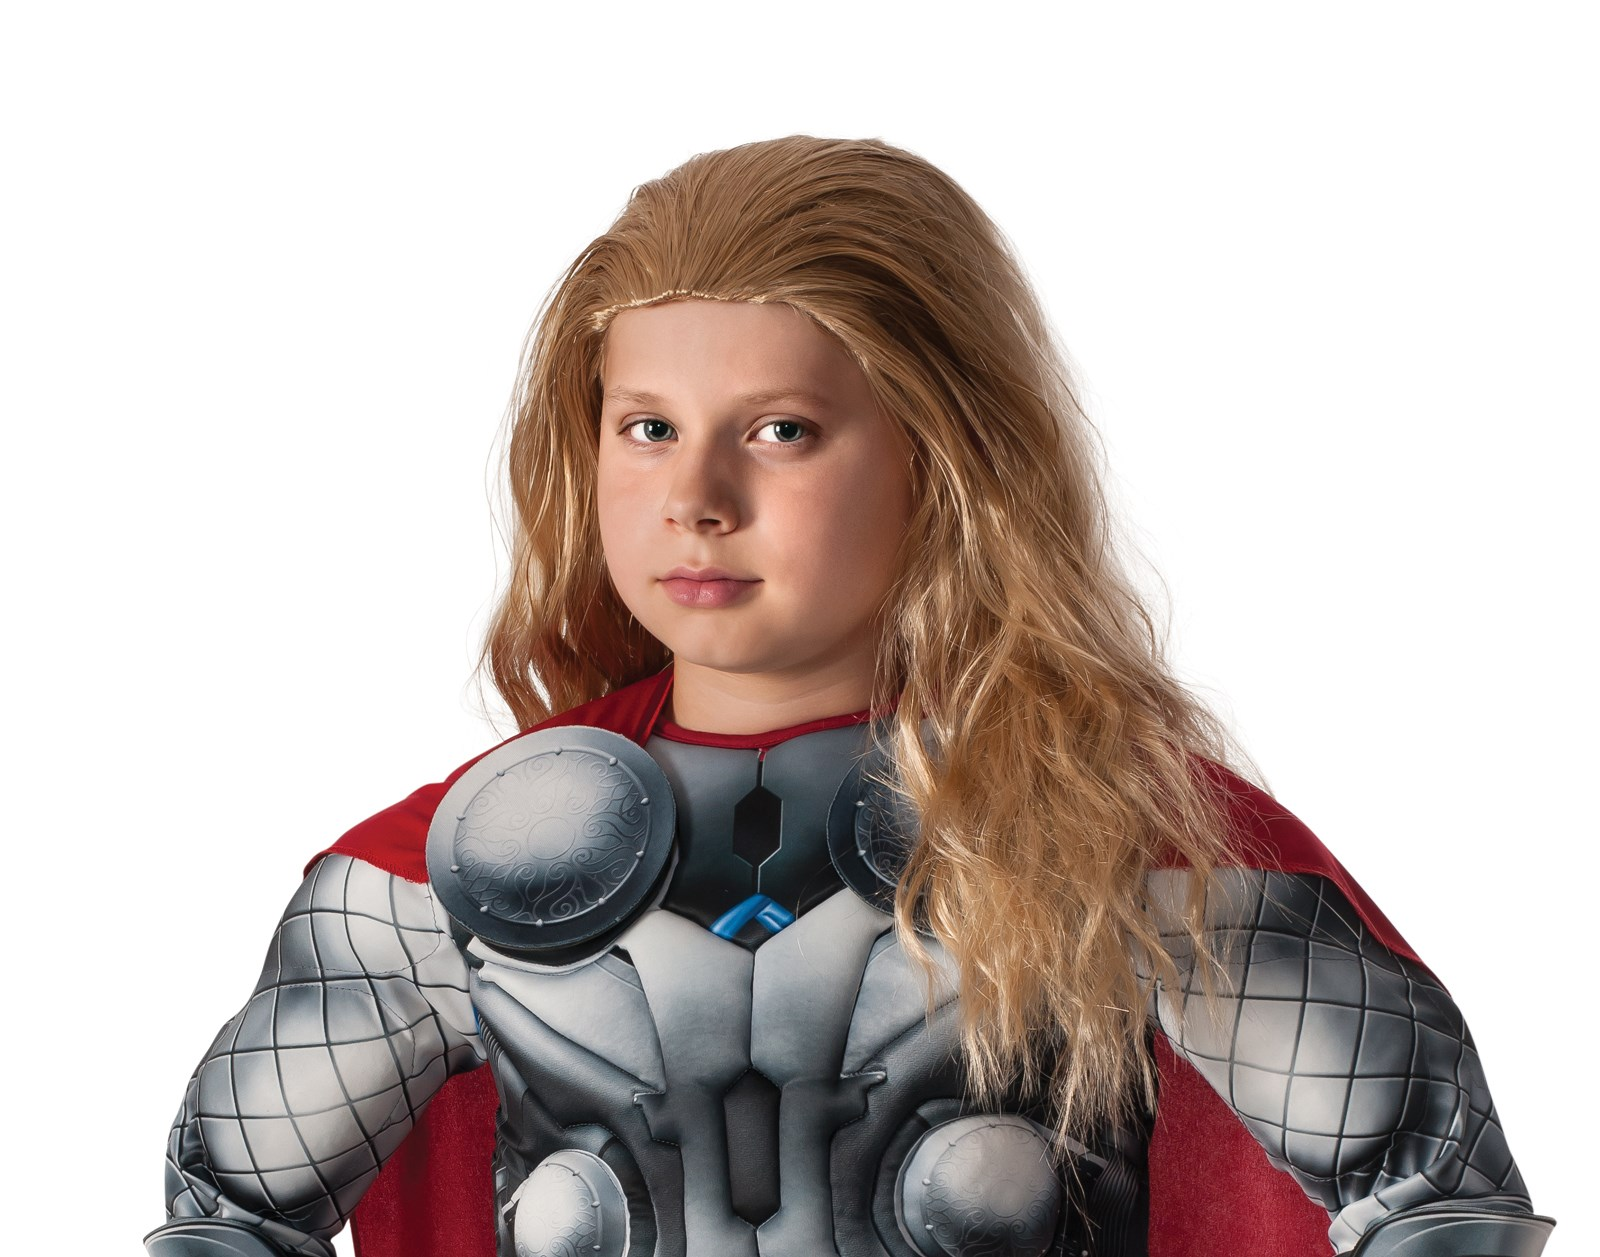 Avengers 2 - Age of Ultron: Thor Wig For Kids